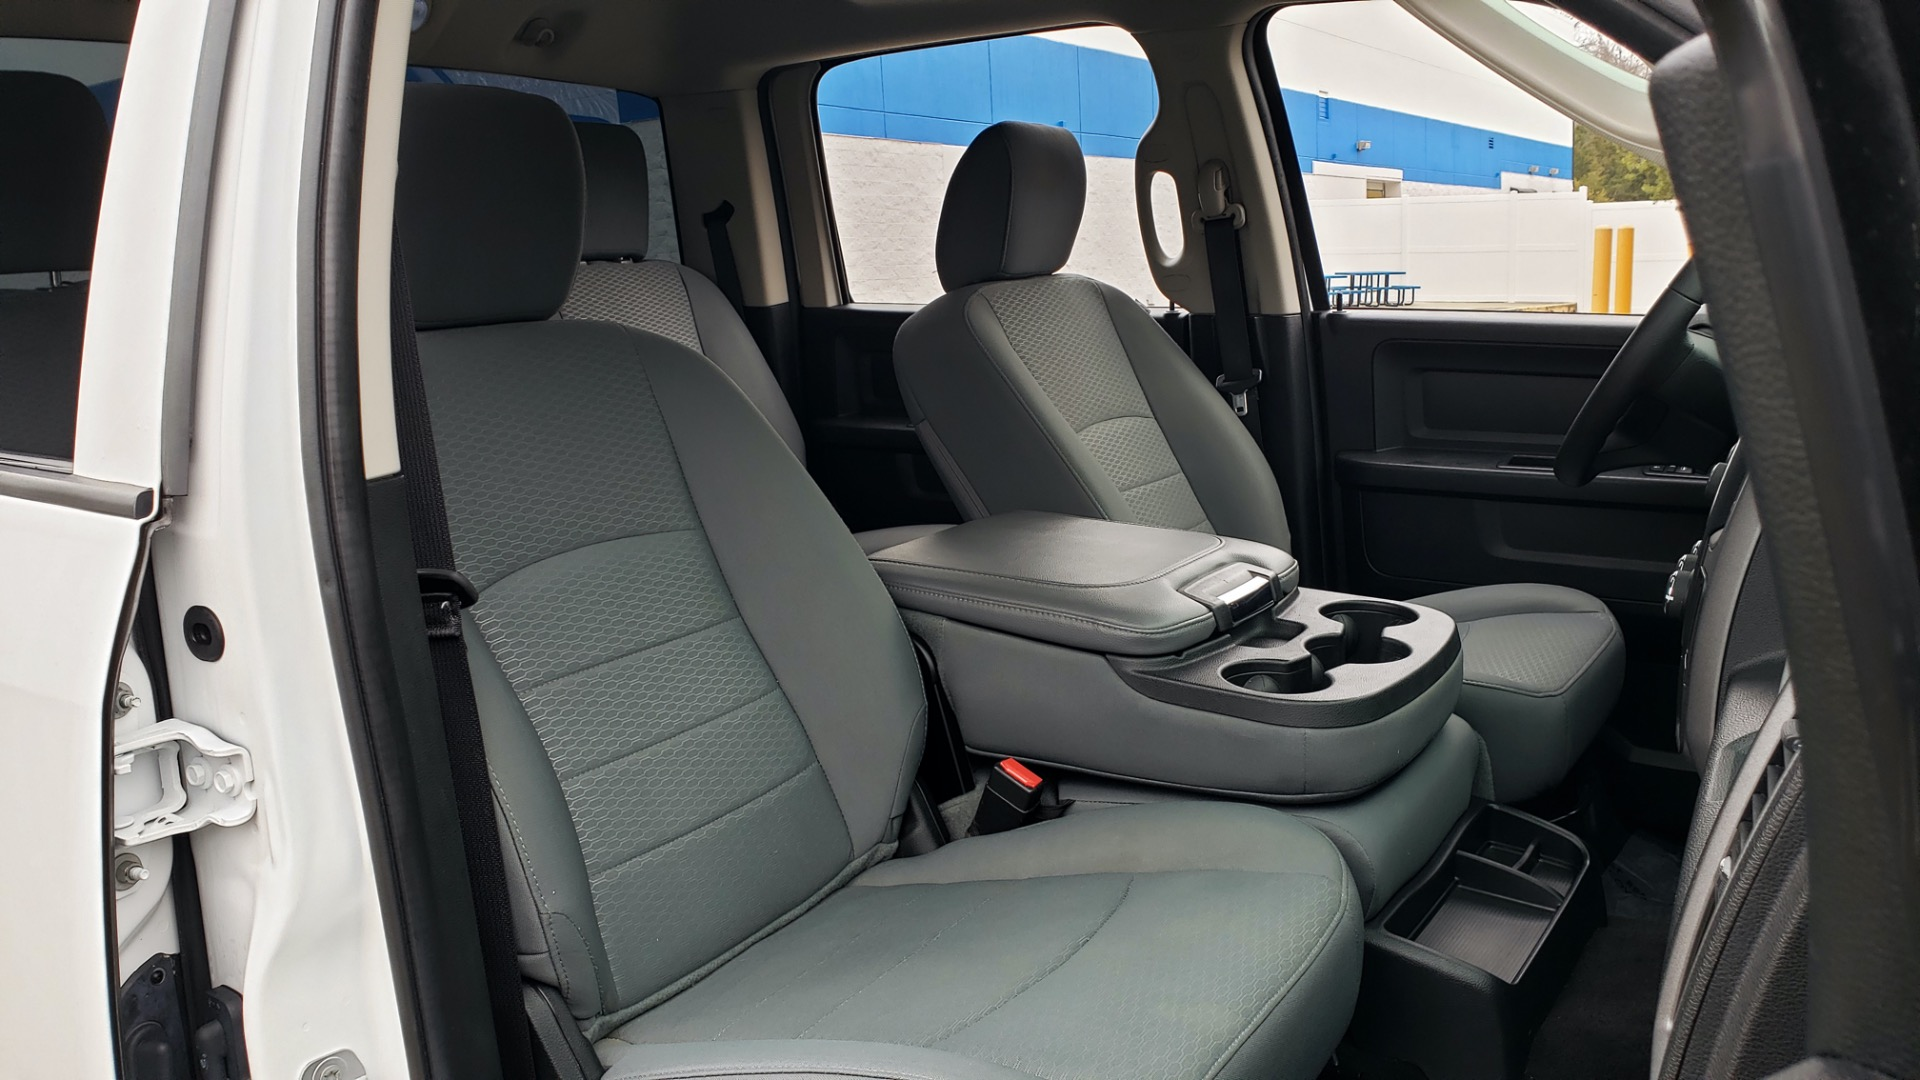 Used 2016 Ram 1500 EXPRESS / CREW CAB / 4X4 / BED LINER / 32-GALLON TANK for sale Sold at Formula Imports in Charlotte NC 28227 59